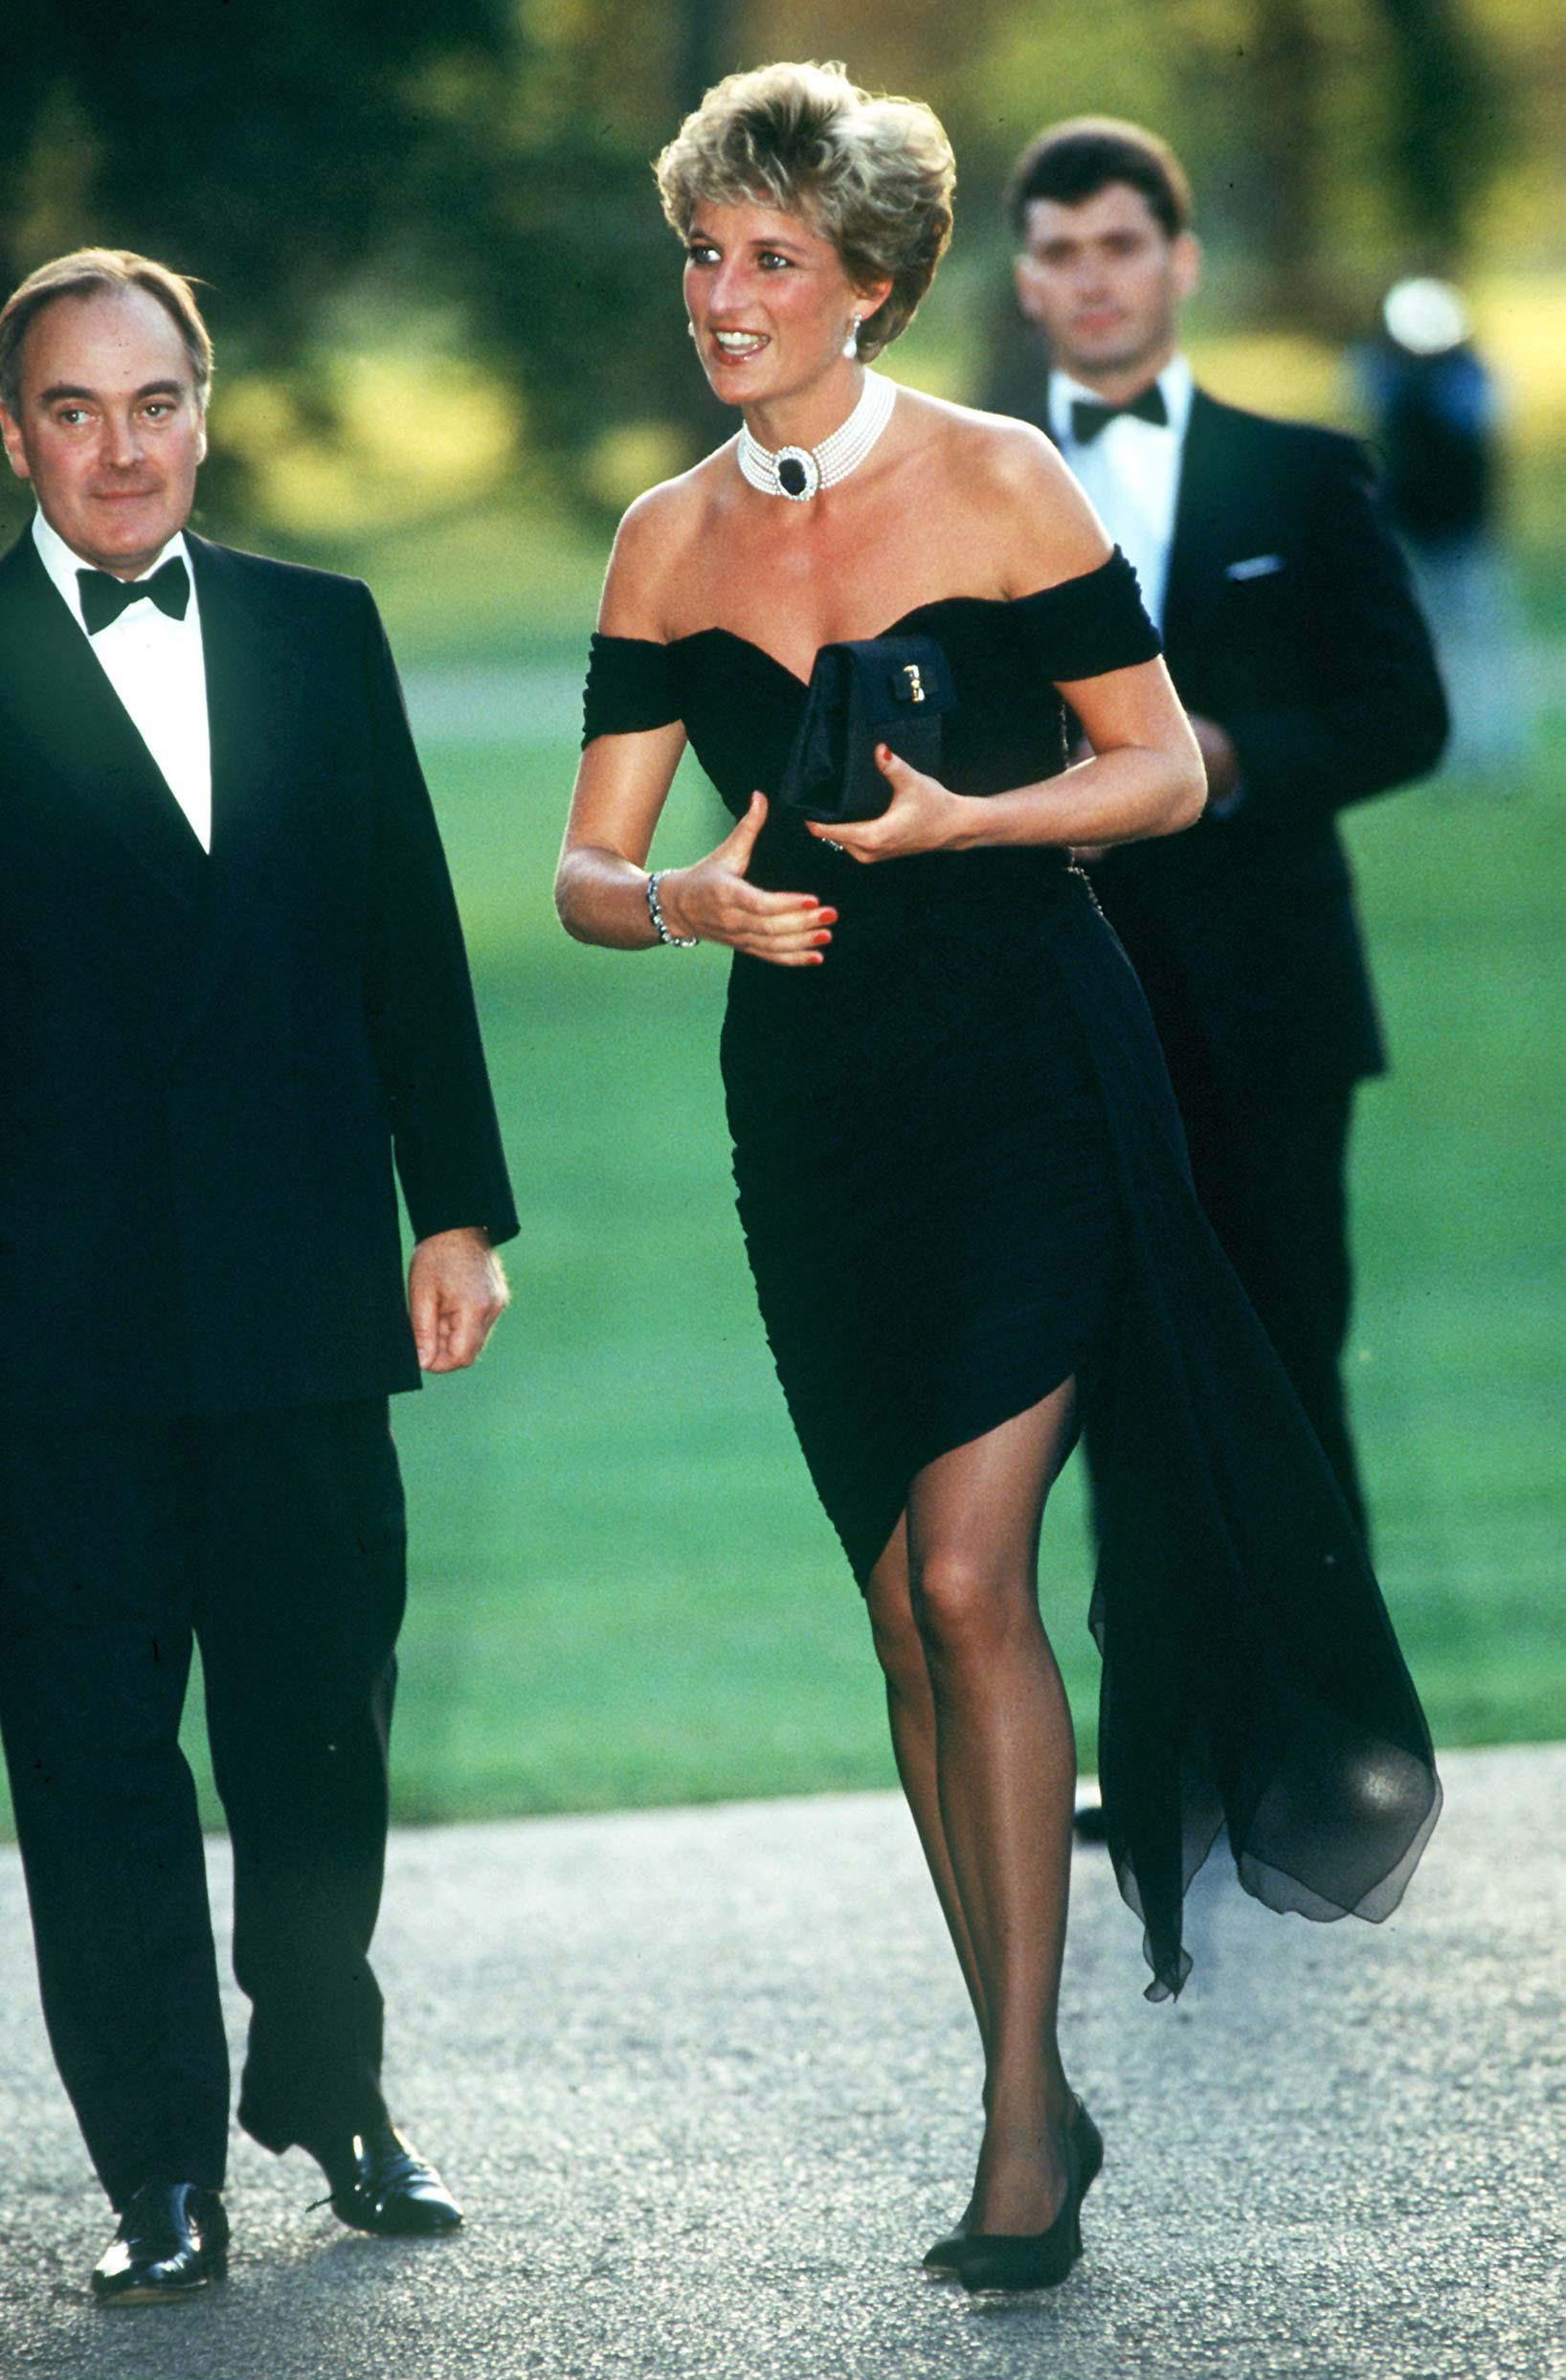 Princess Of Wales At The Serpentine Gallery In London on June 29, 1994. | Photo: Getty Images